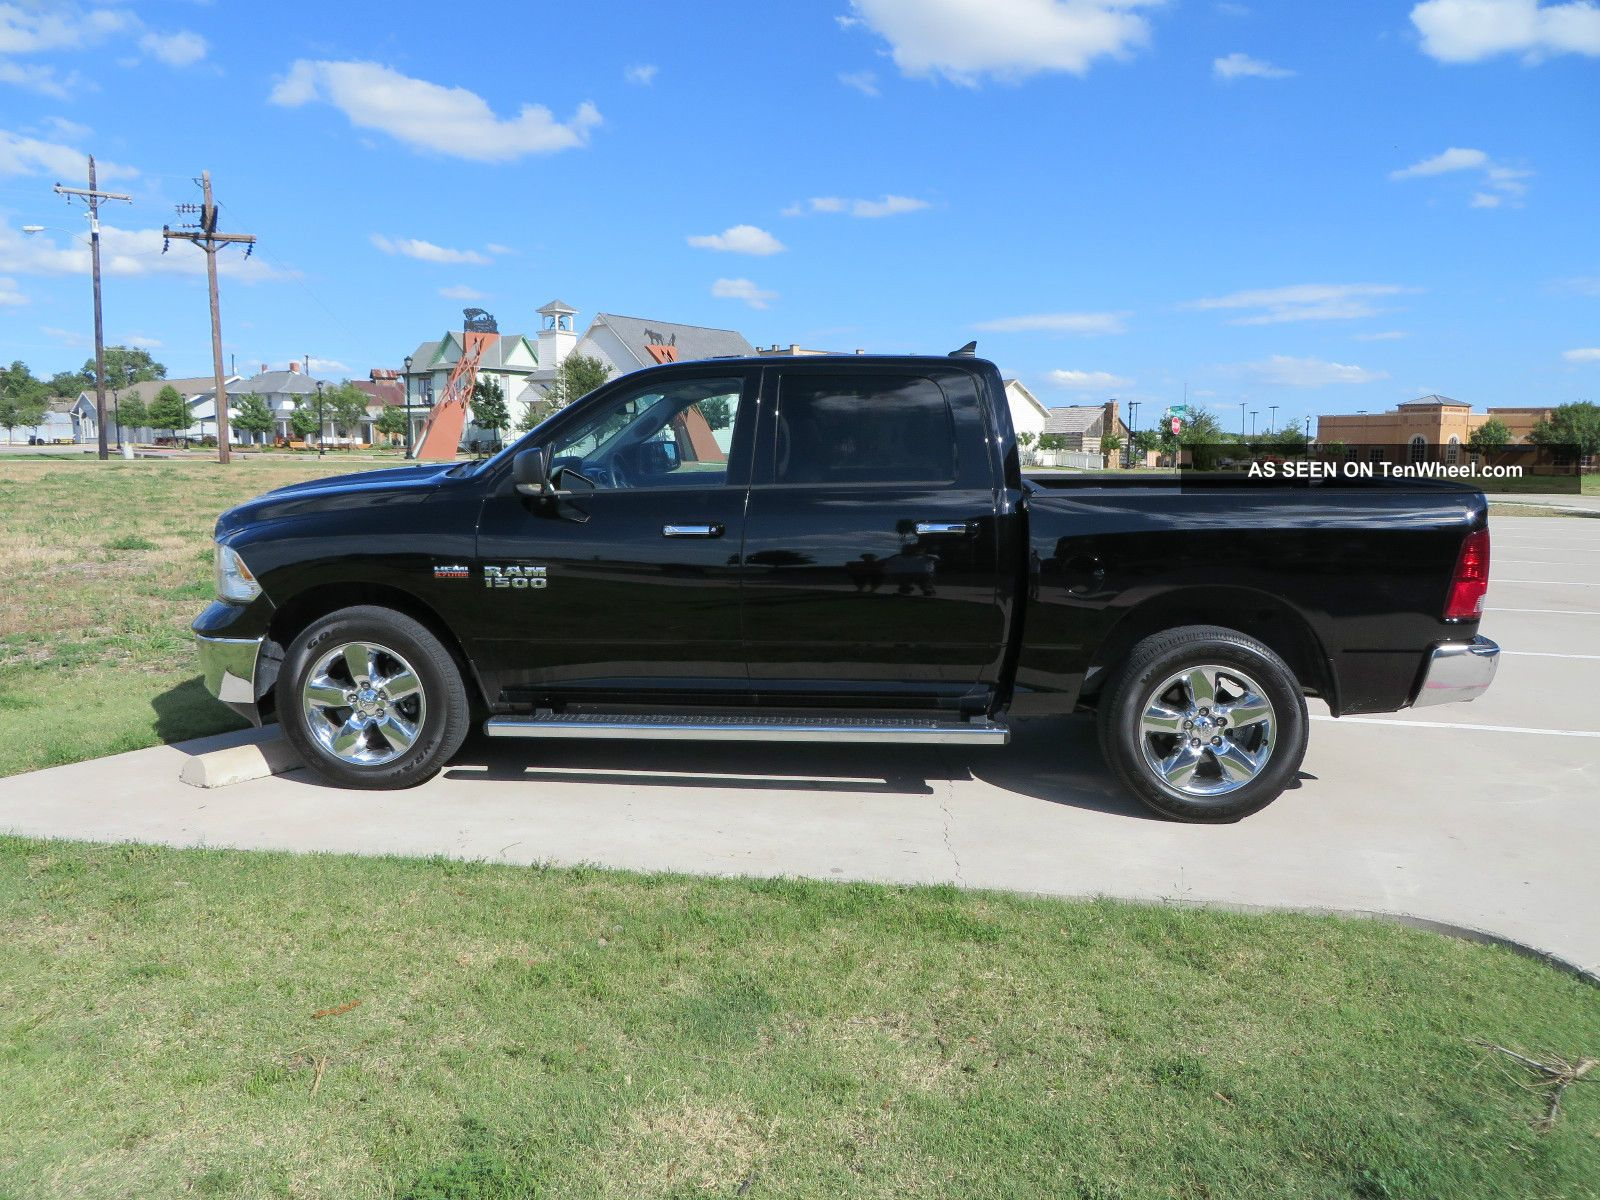 2013 ram 1500 lonestar slt crew cab pickup 4 door 5 7l fully loaded. Black Bedroom Furniture Sets. Home Design Ideas